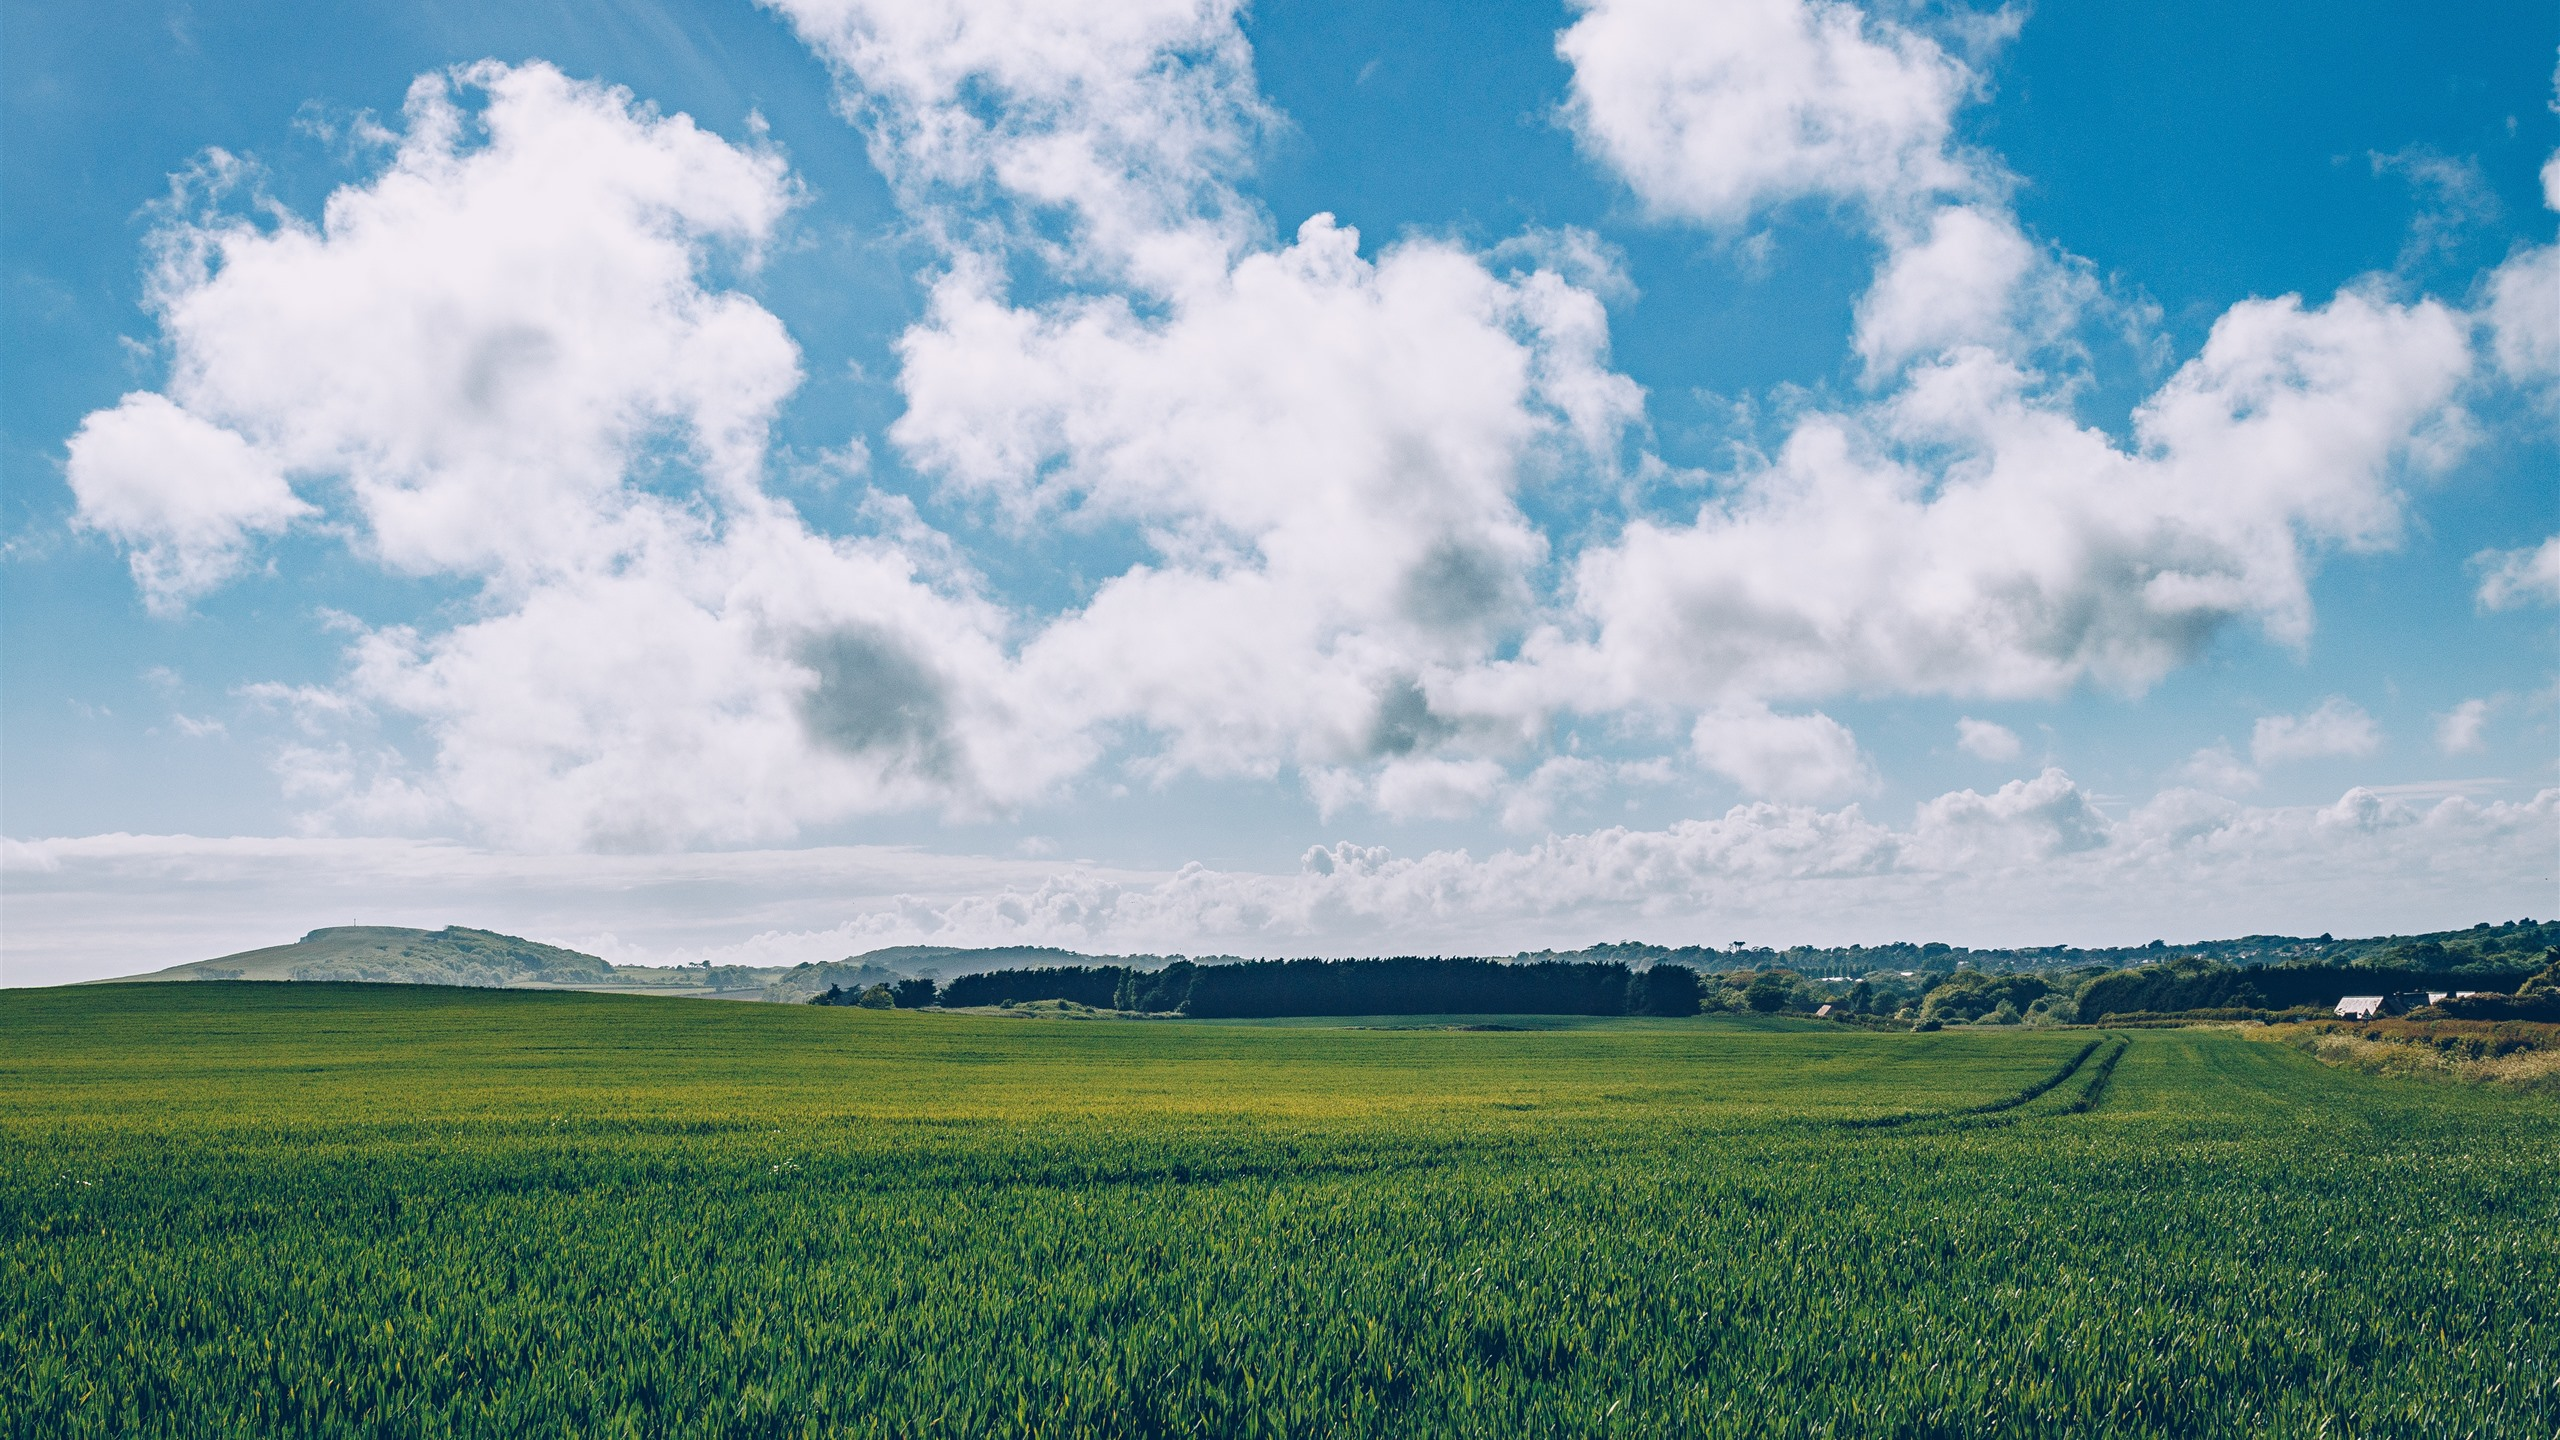 Green Fields Blue Sky White Clouds Countryside 1242x2688